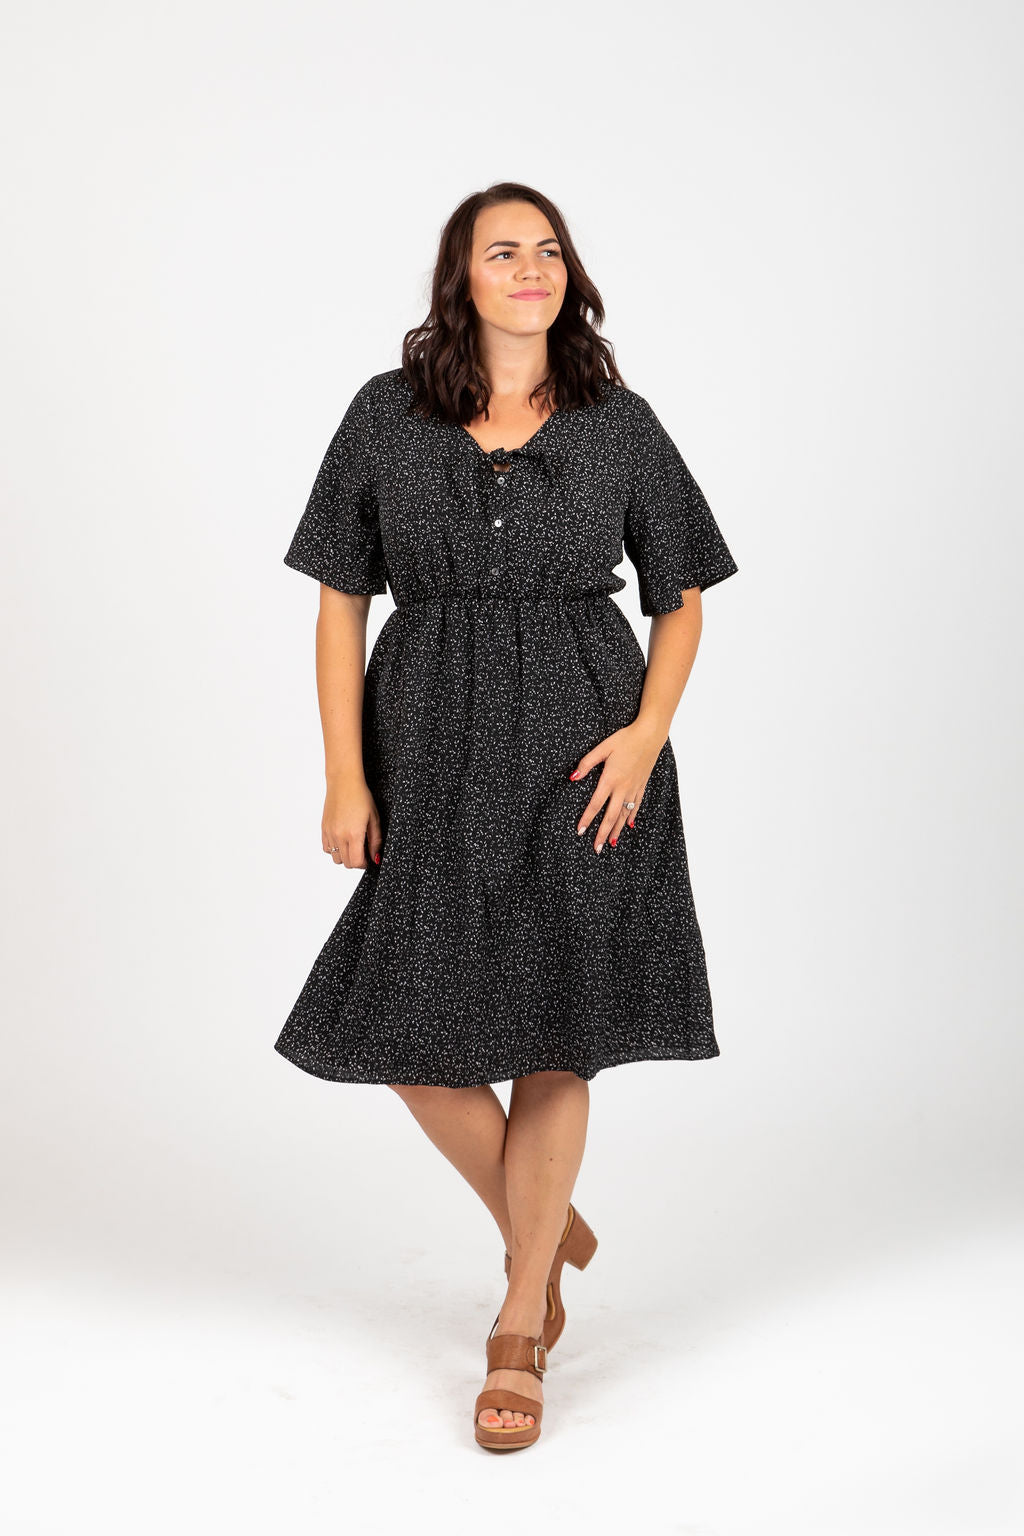 Piper & Scoot: The Bristol Dot Tie Front Dress in Black